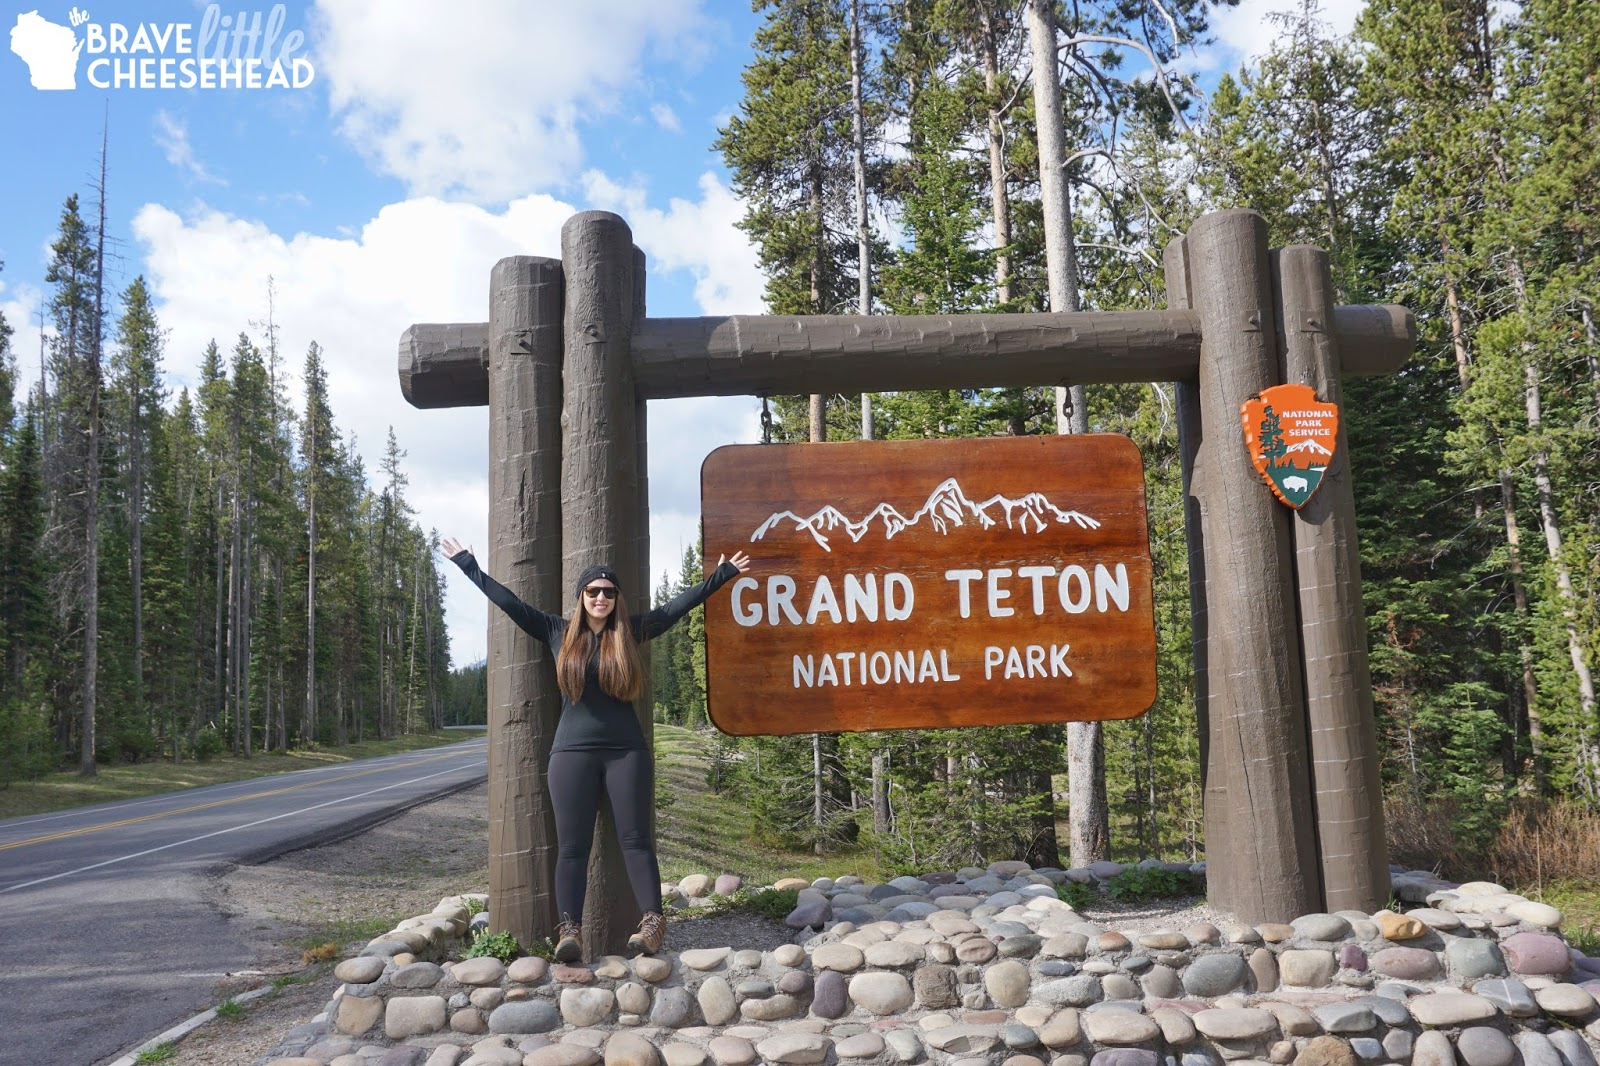 What's in My Pack? 9 Essentials for Any U.S. National Park Trip | Brave Little Cheesehead